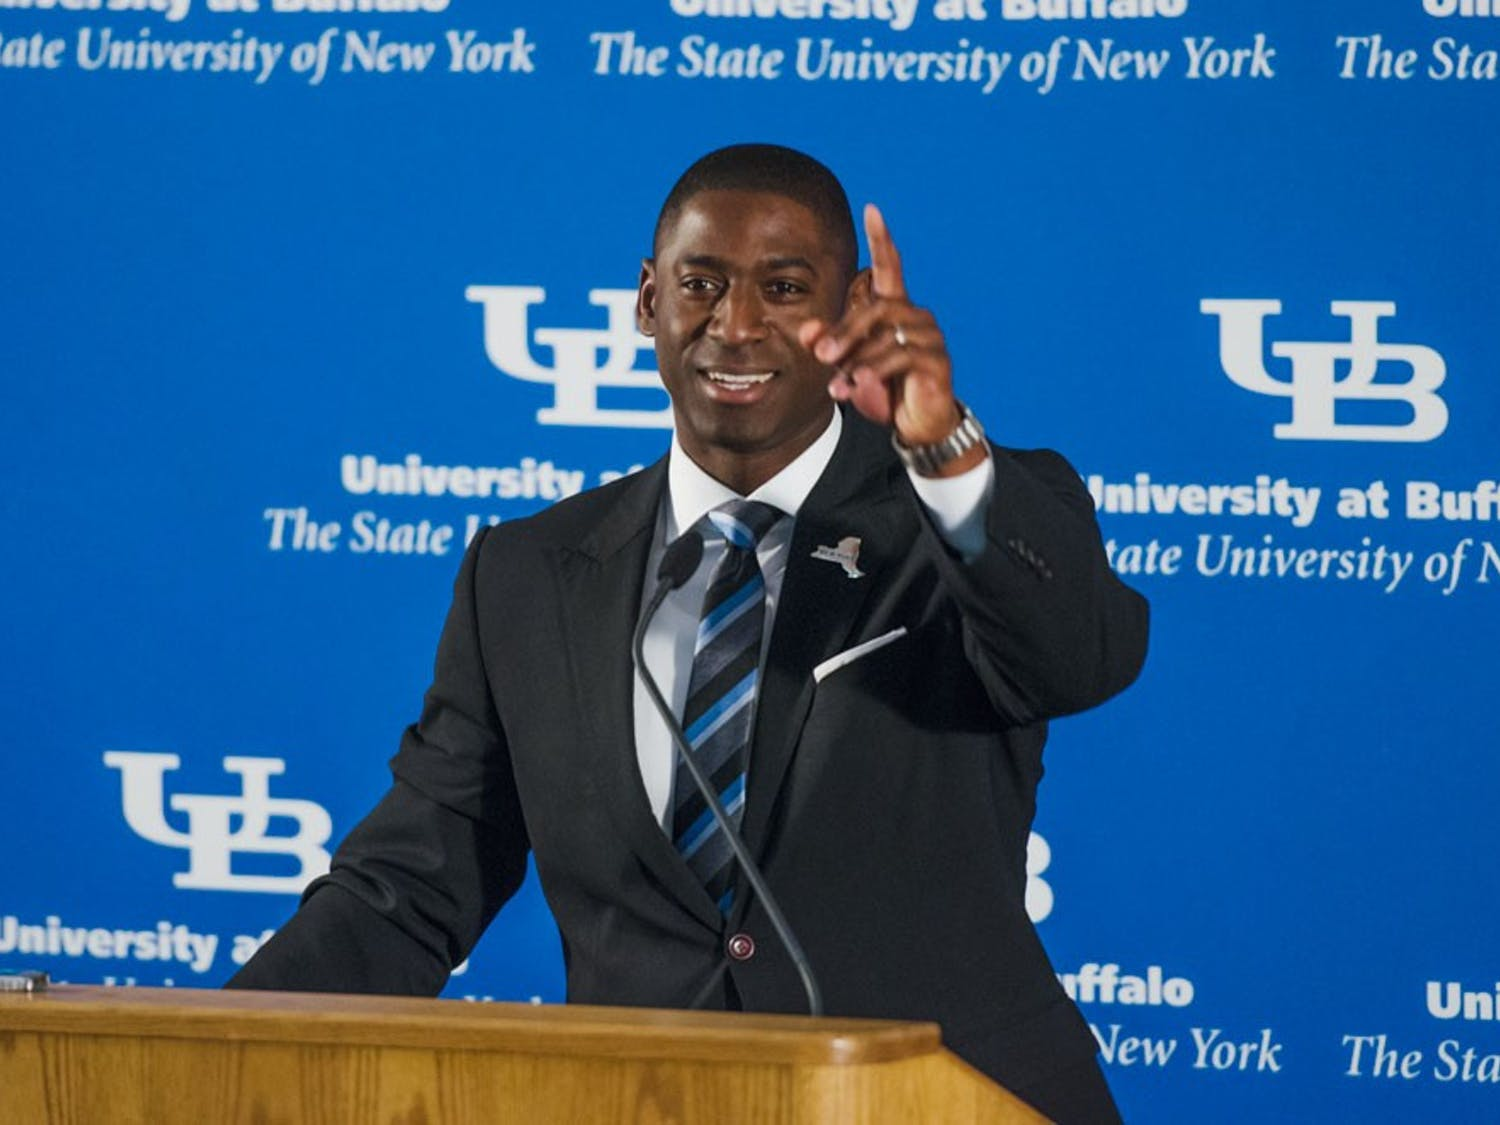 Allen Greene was named UB's athletic director in theUB Stadium team meeting room Tuesday morning. Greene previously served as UB's deputy director of athletics under Danny White, who accepted the AD job at the Univeristy of Central Florida last week.